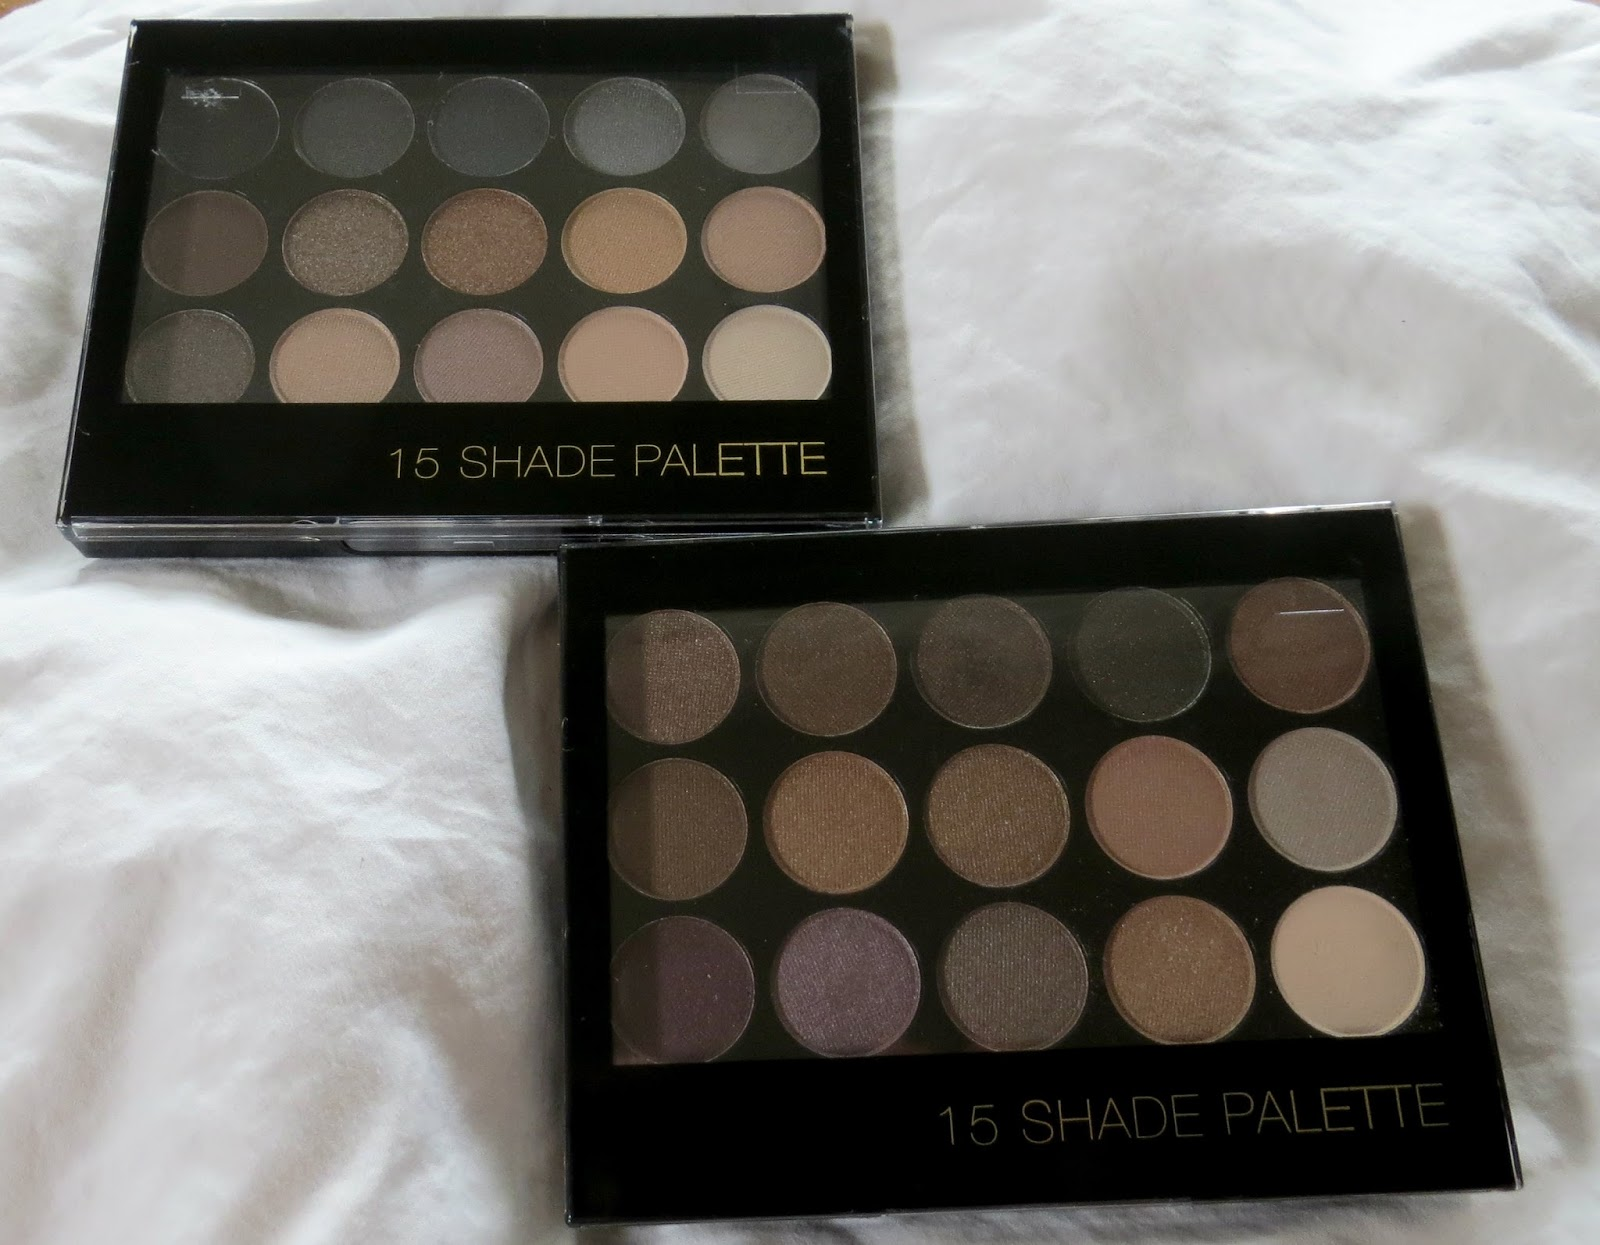 F21 15 Shade Palette in Brown/Taupe